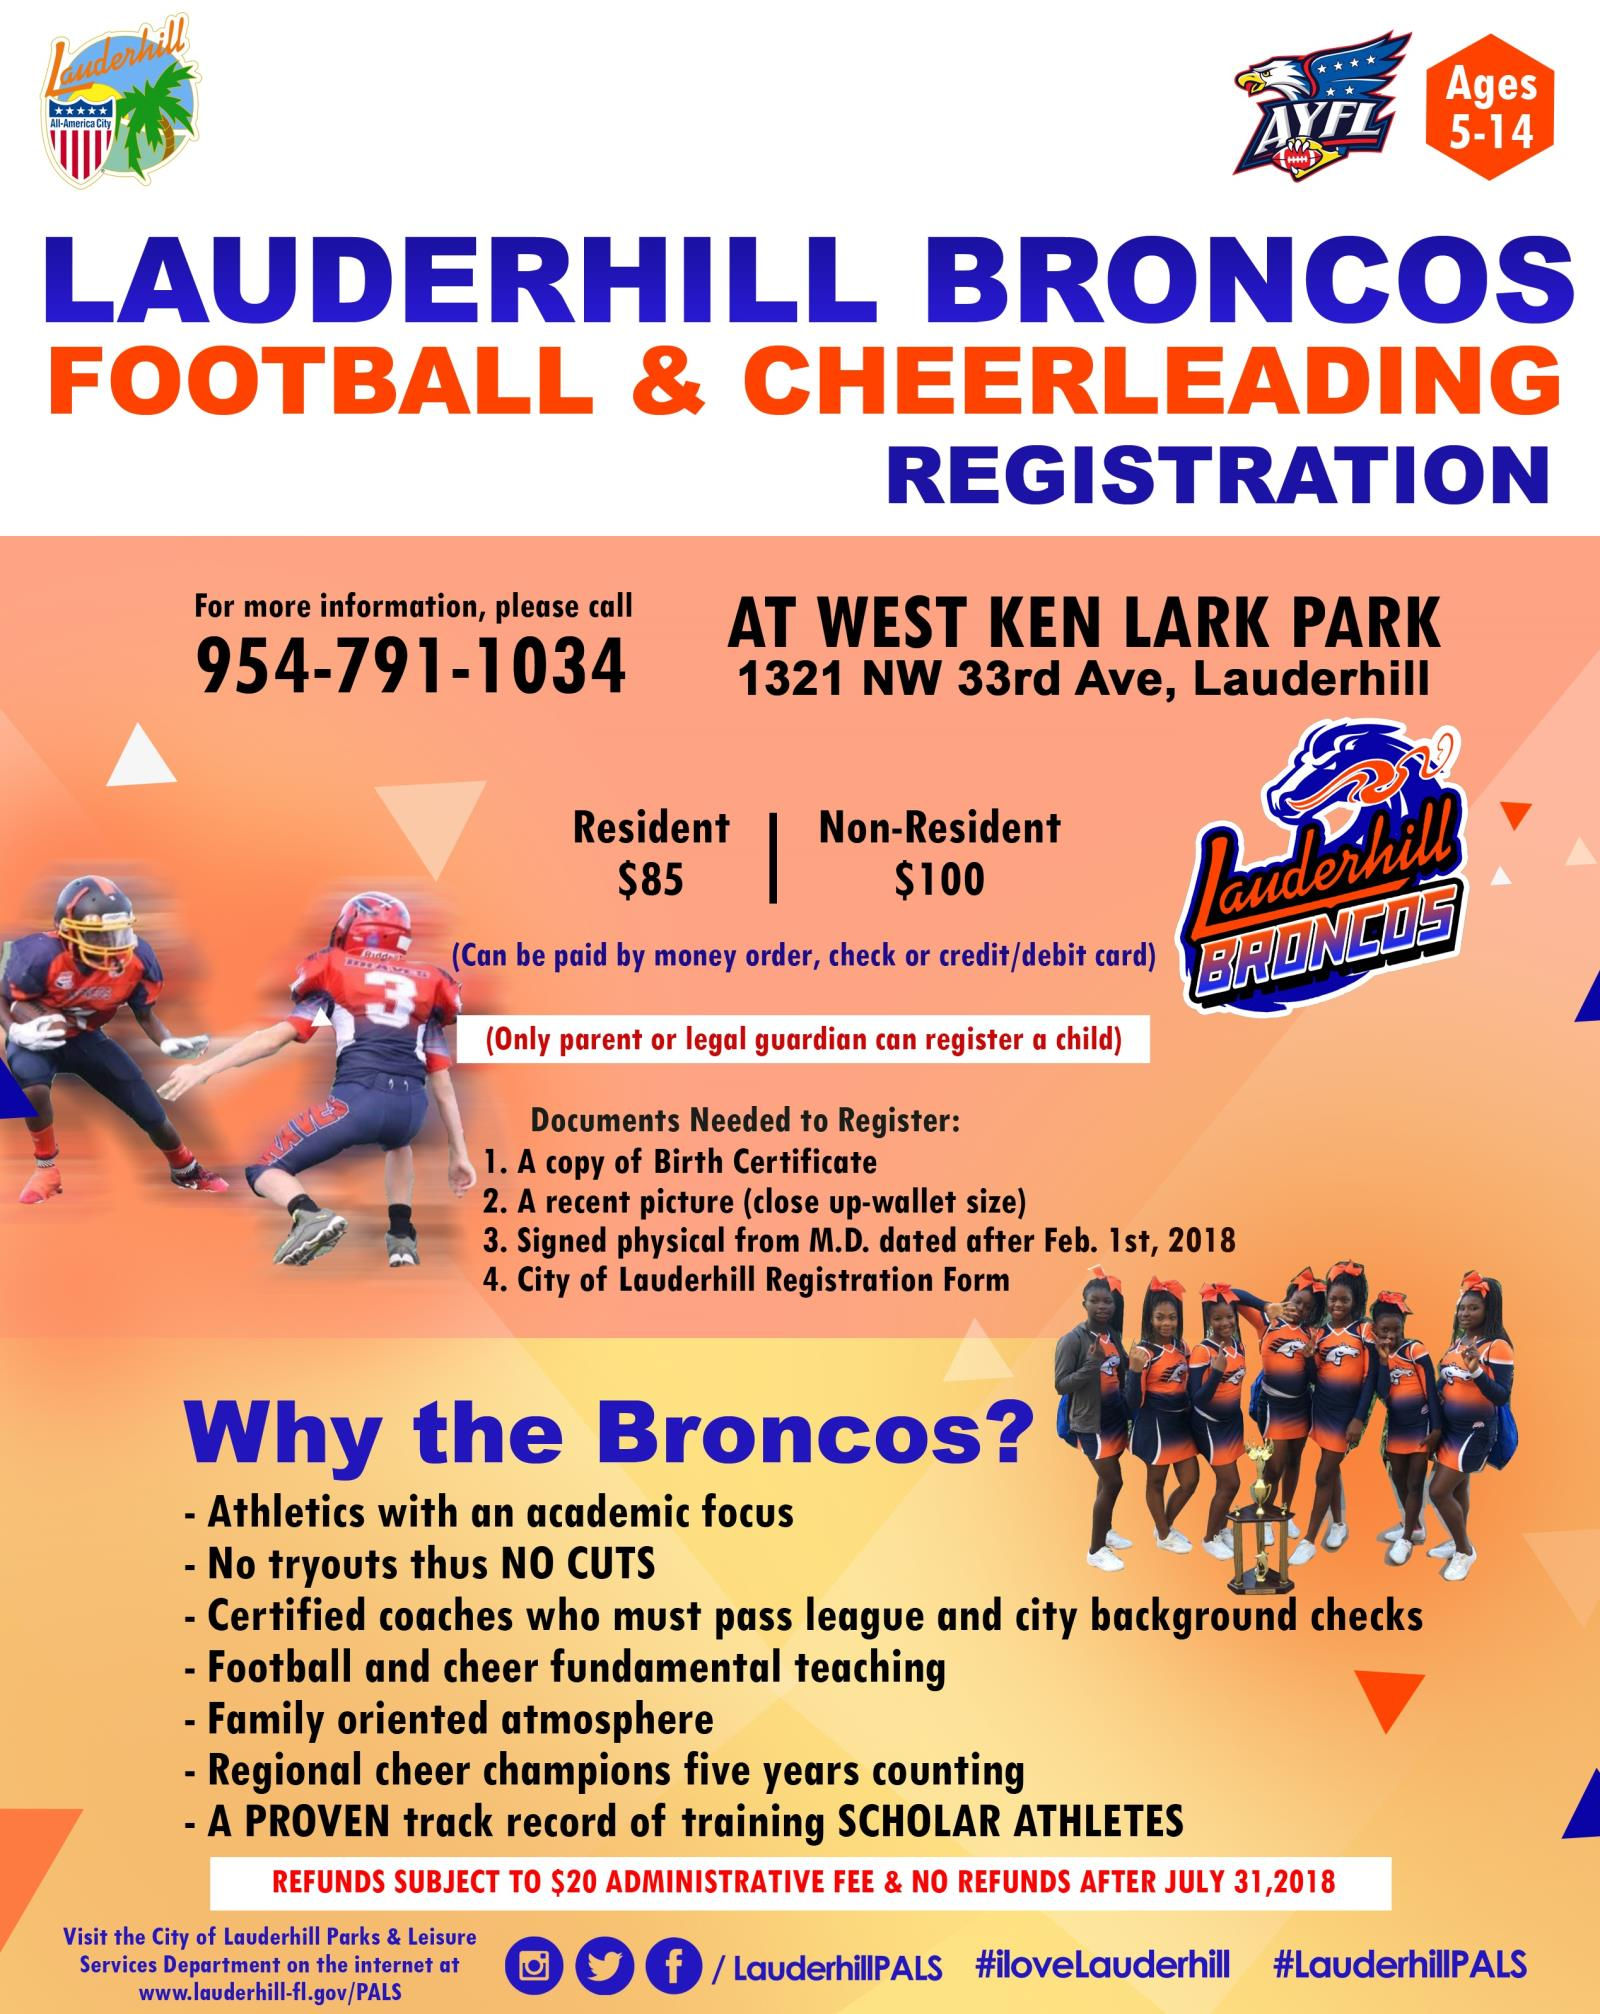 2017 Broncos Cheerleading & Football Registration Flyer